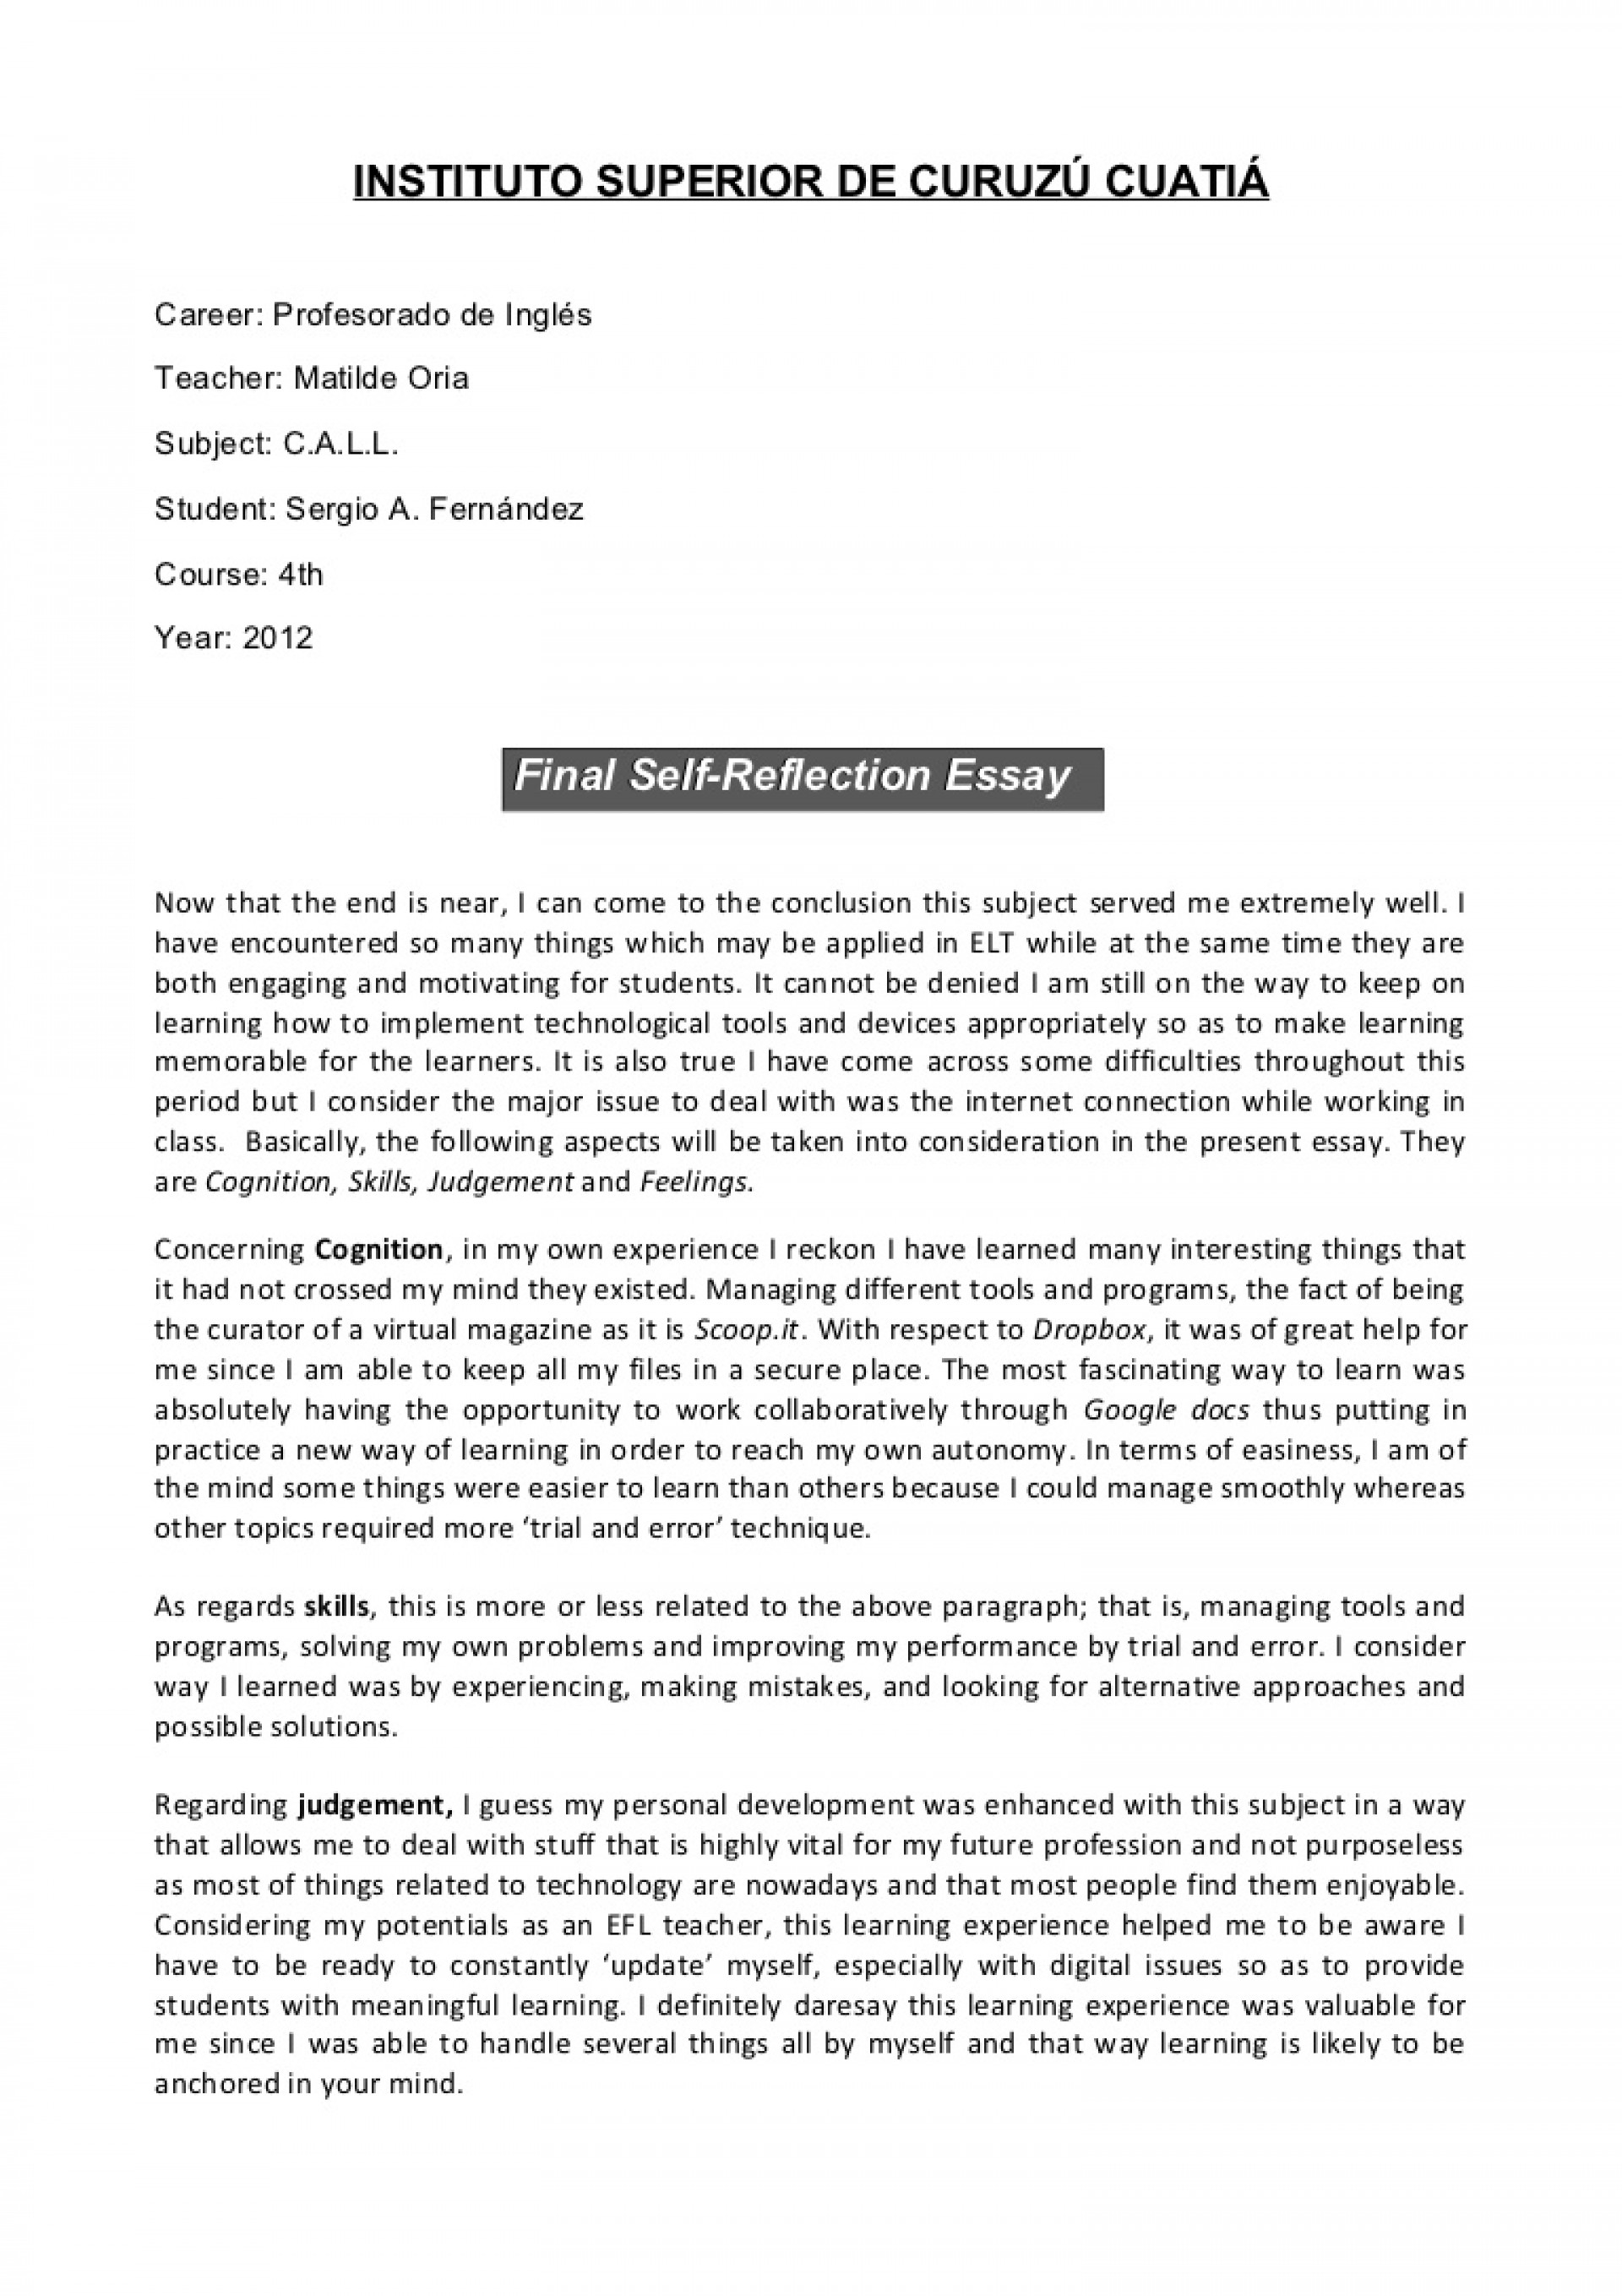 003 Reflection Essay Example Sergio Finalself Reflectionessay Phpapp01 Thumbnail Formidable Self Rubric Paper Outline Template Reflective Writing Format 1920